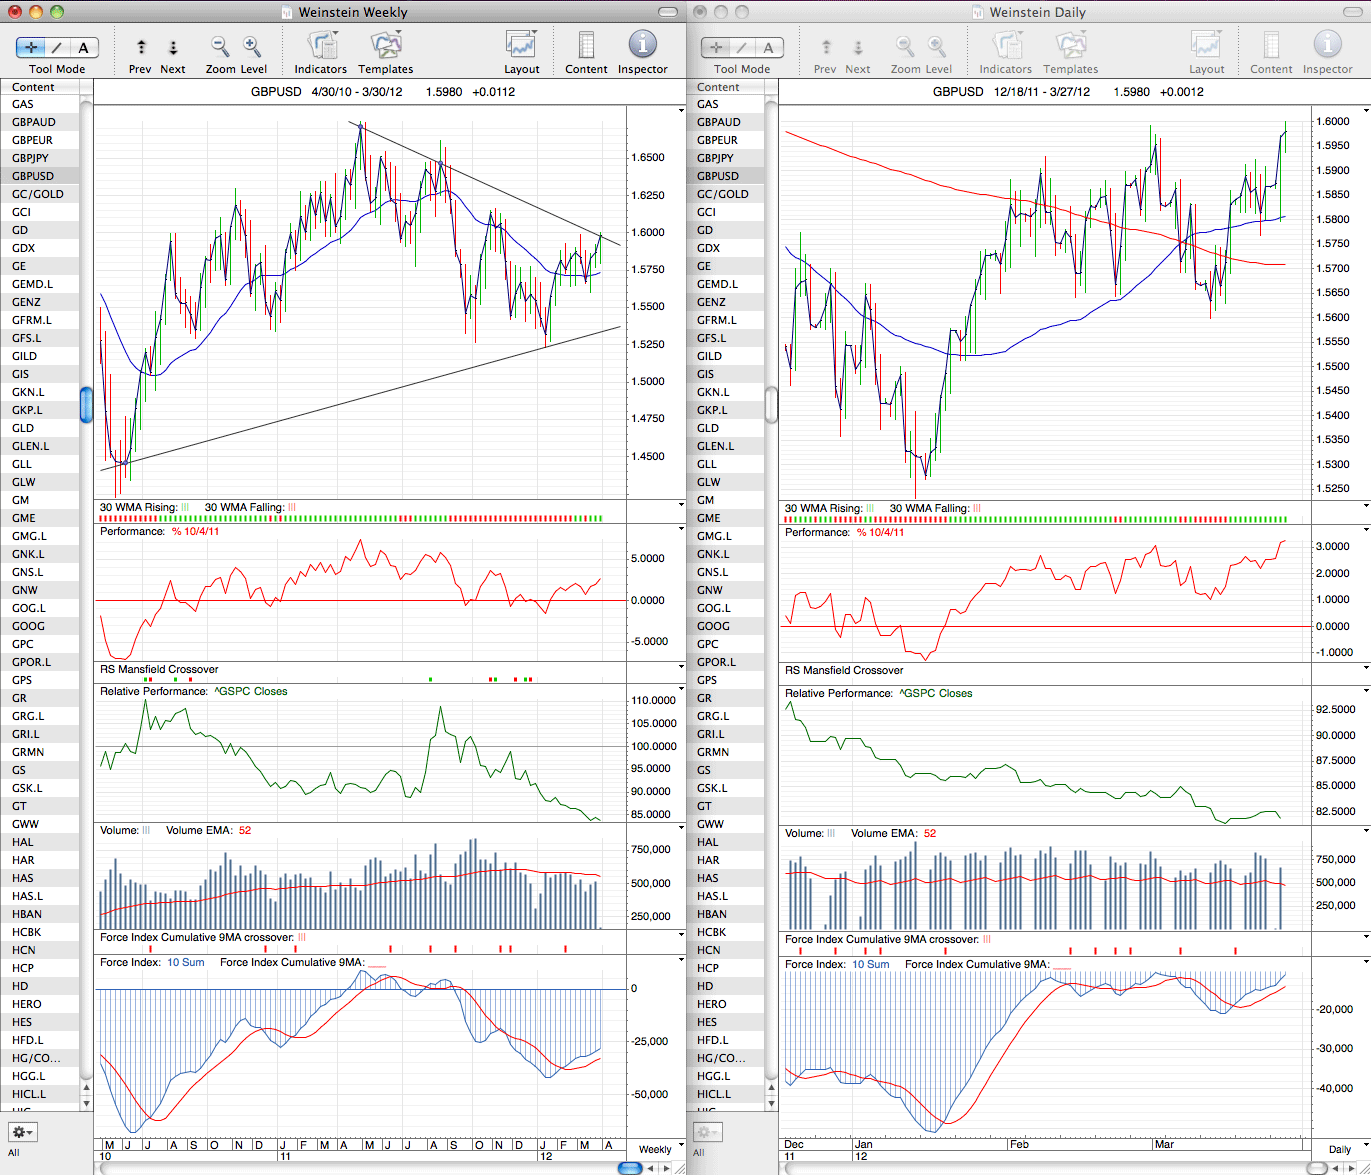 gbpusd_weekly_27_3_12.png